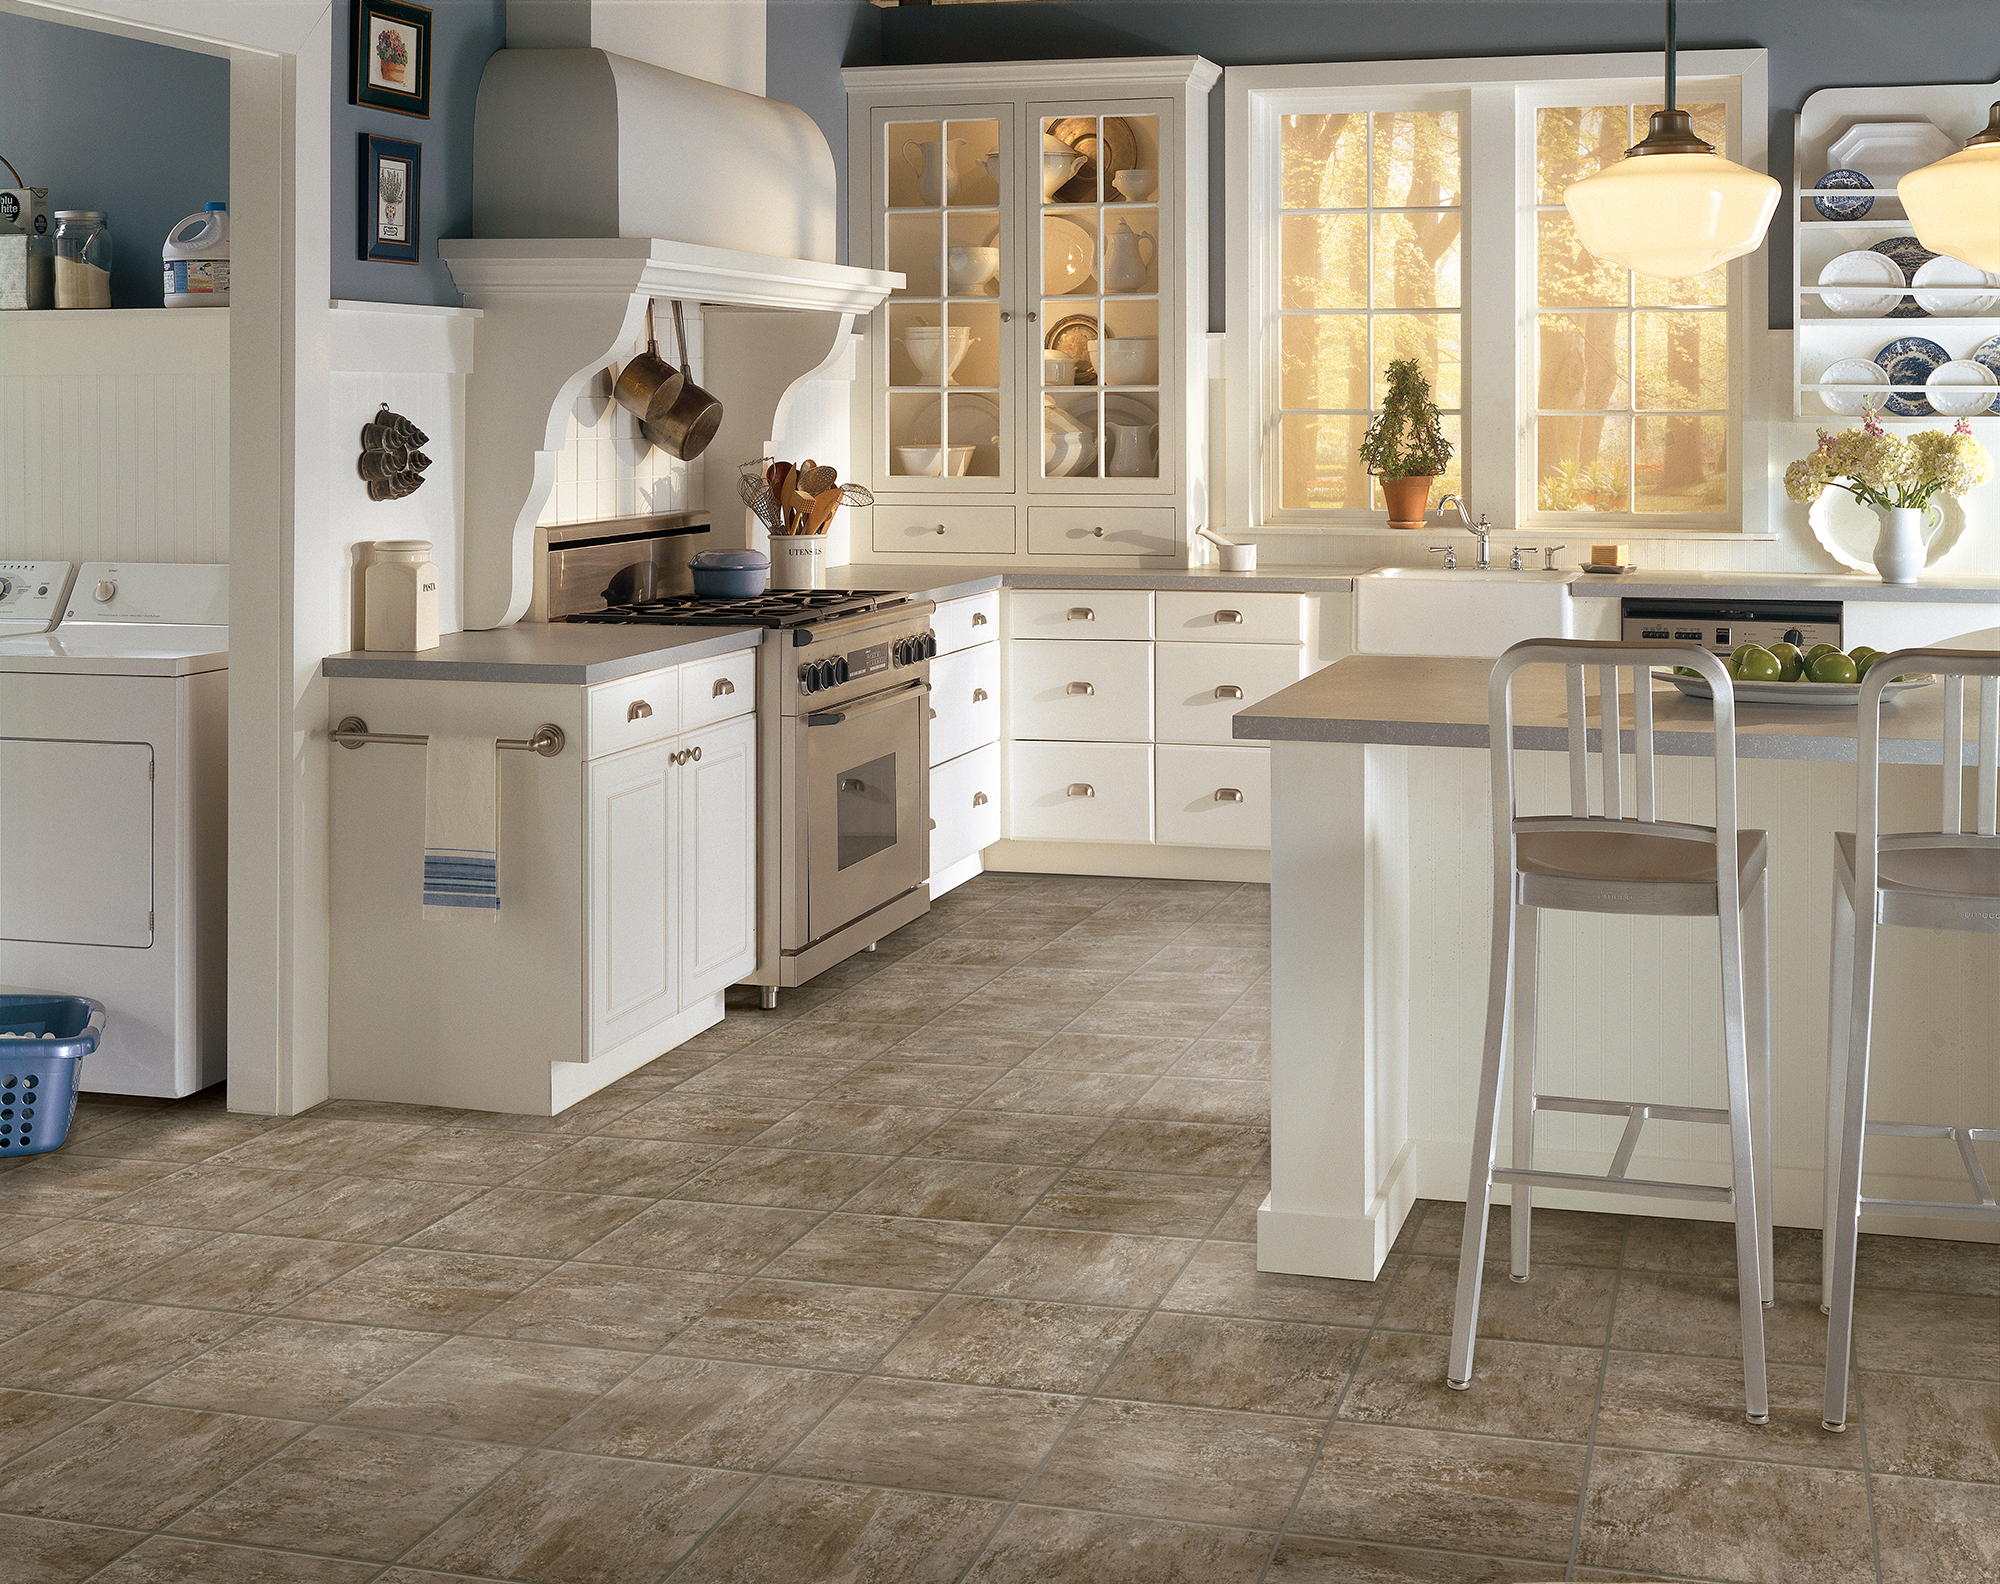 5 Flooring Options For Kitchens And Bathrooms  Empire. Kitchen Garden Herbs. Kitchen Tiles Manchester. Kitchen Wall Tile Pictures. Kitchen Tea And Coffee Sets. Kitchen Hoods Images. Industrial Kitchen Dresser. Kitchen Chairs Argos. John Lewis Mini Kitchen